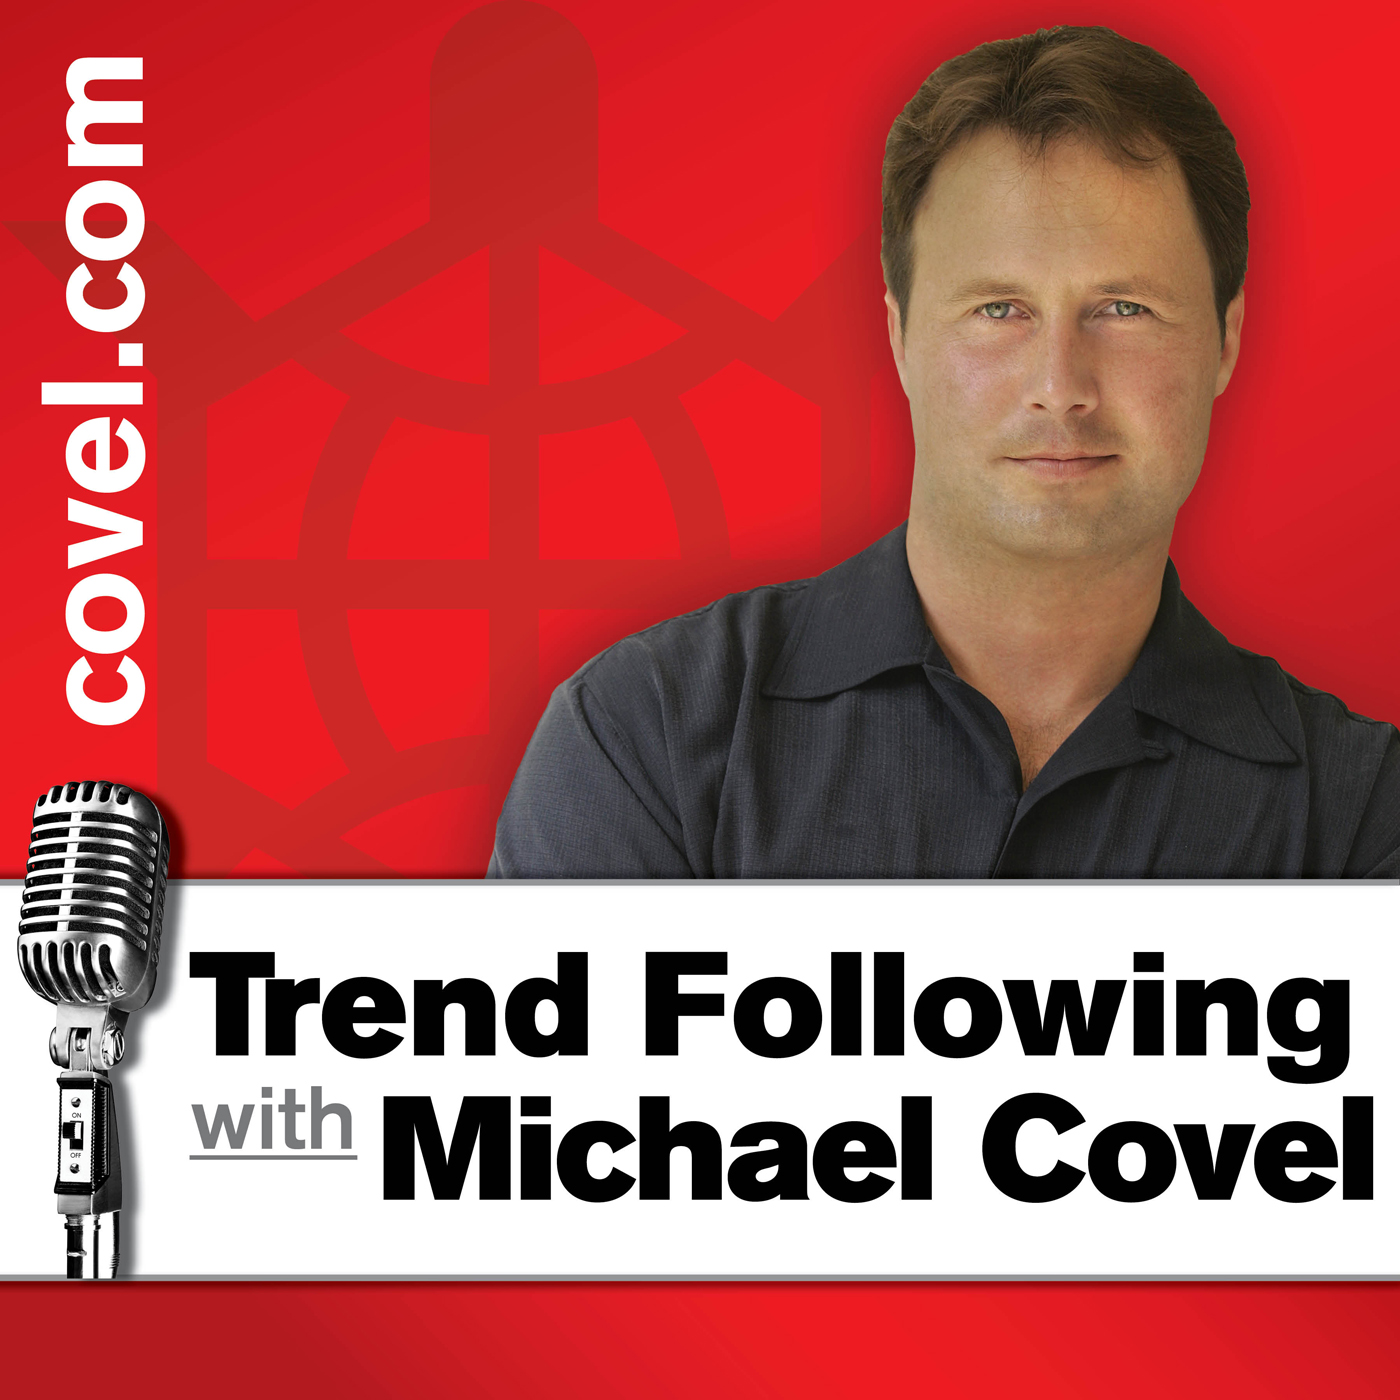 Ep. 111: Nick Radge Interview #2 with Michael Covel on Trend Following Radio